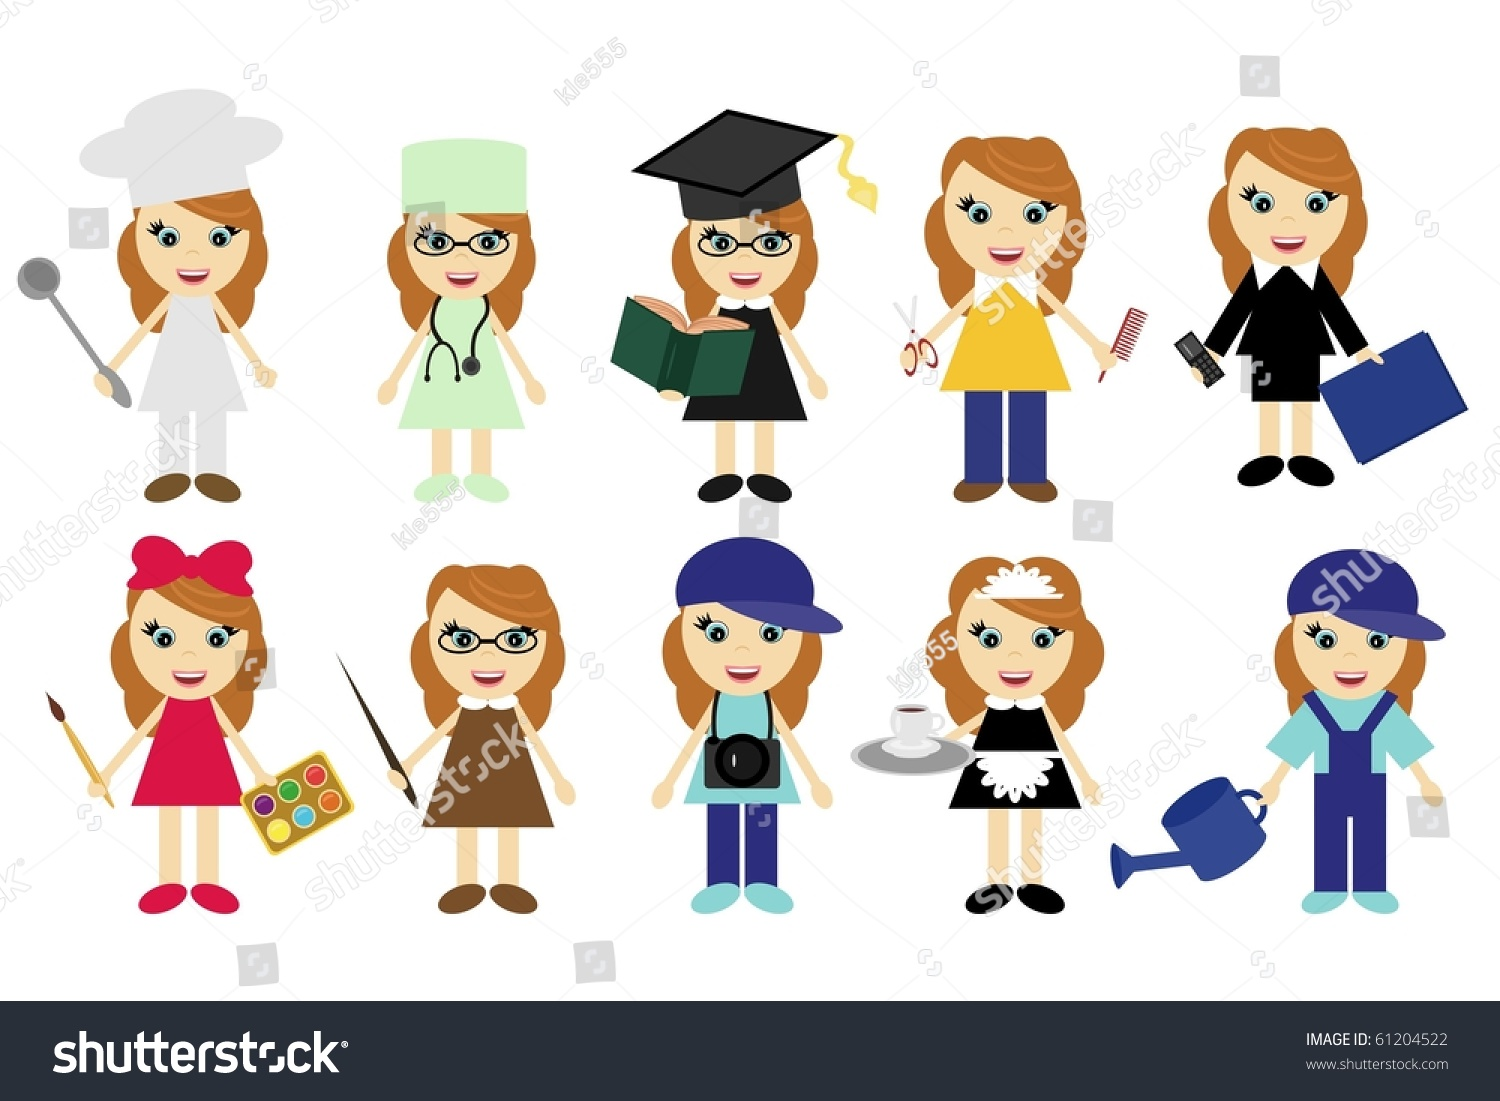 young women ten different jobs stock vector shutterstock young women of ten different jobs